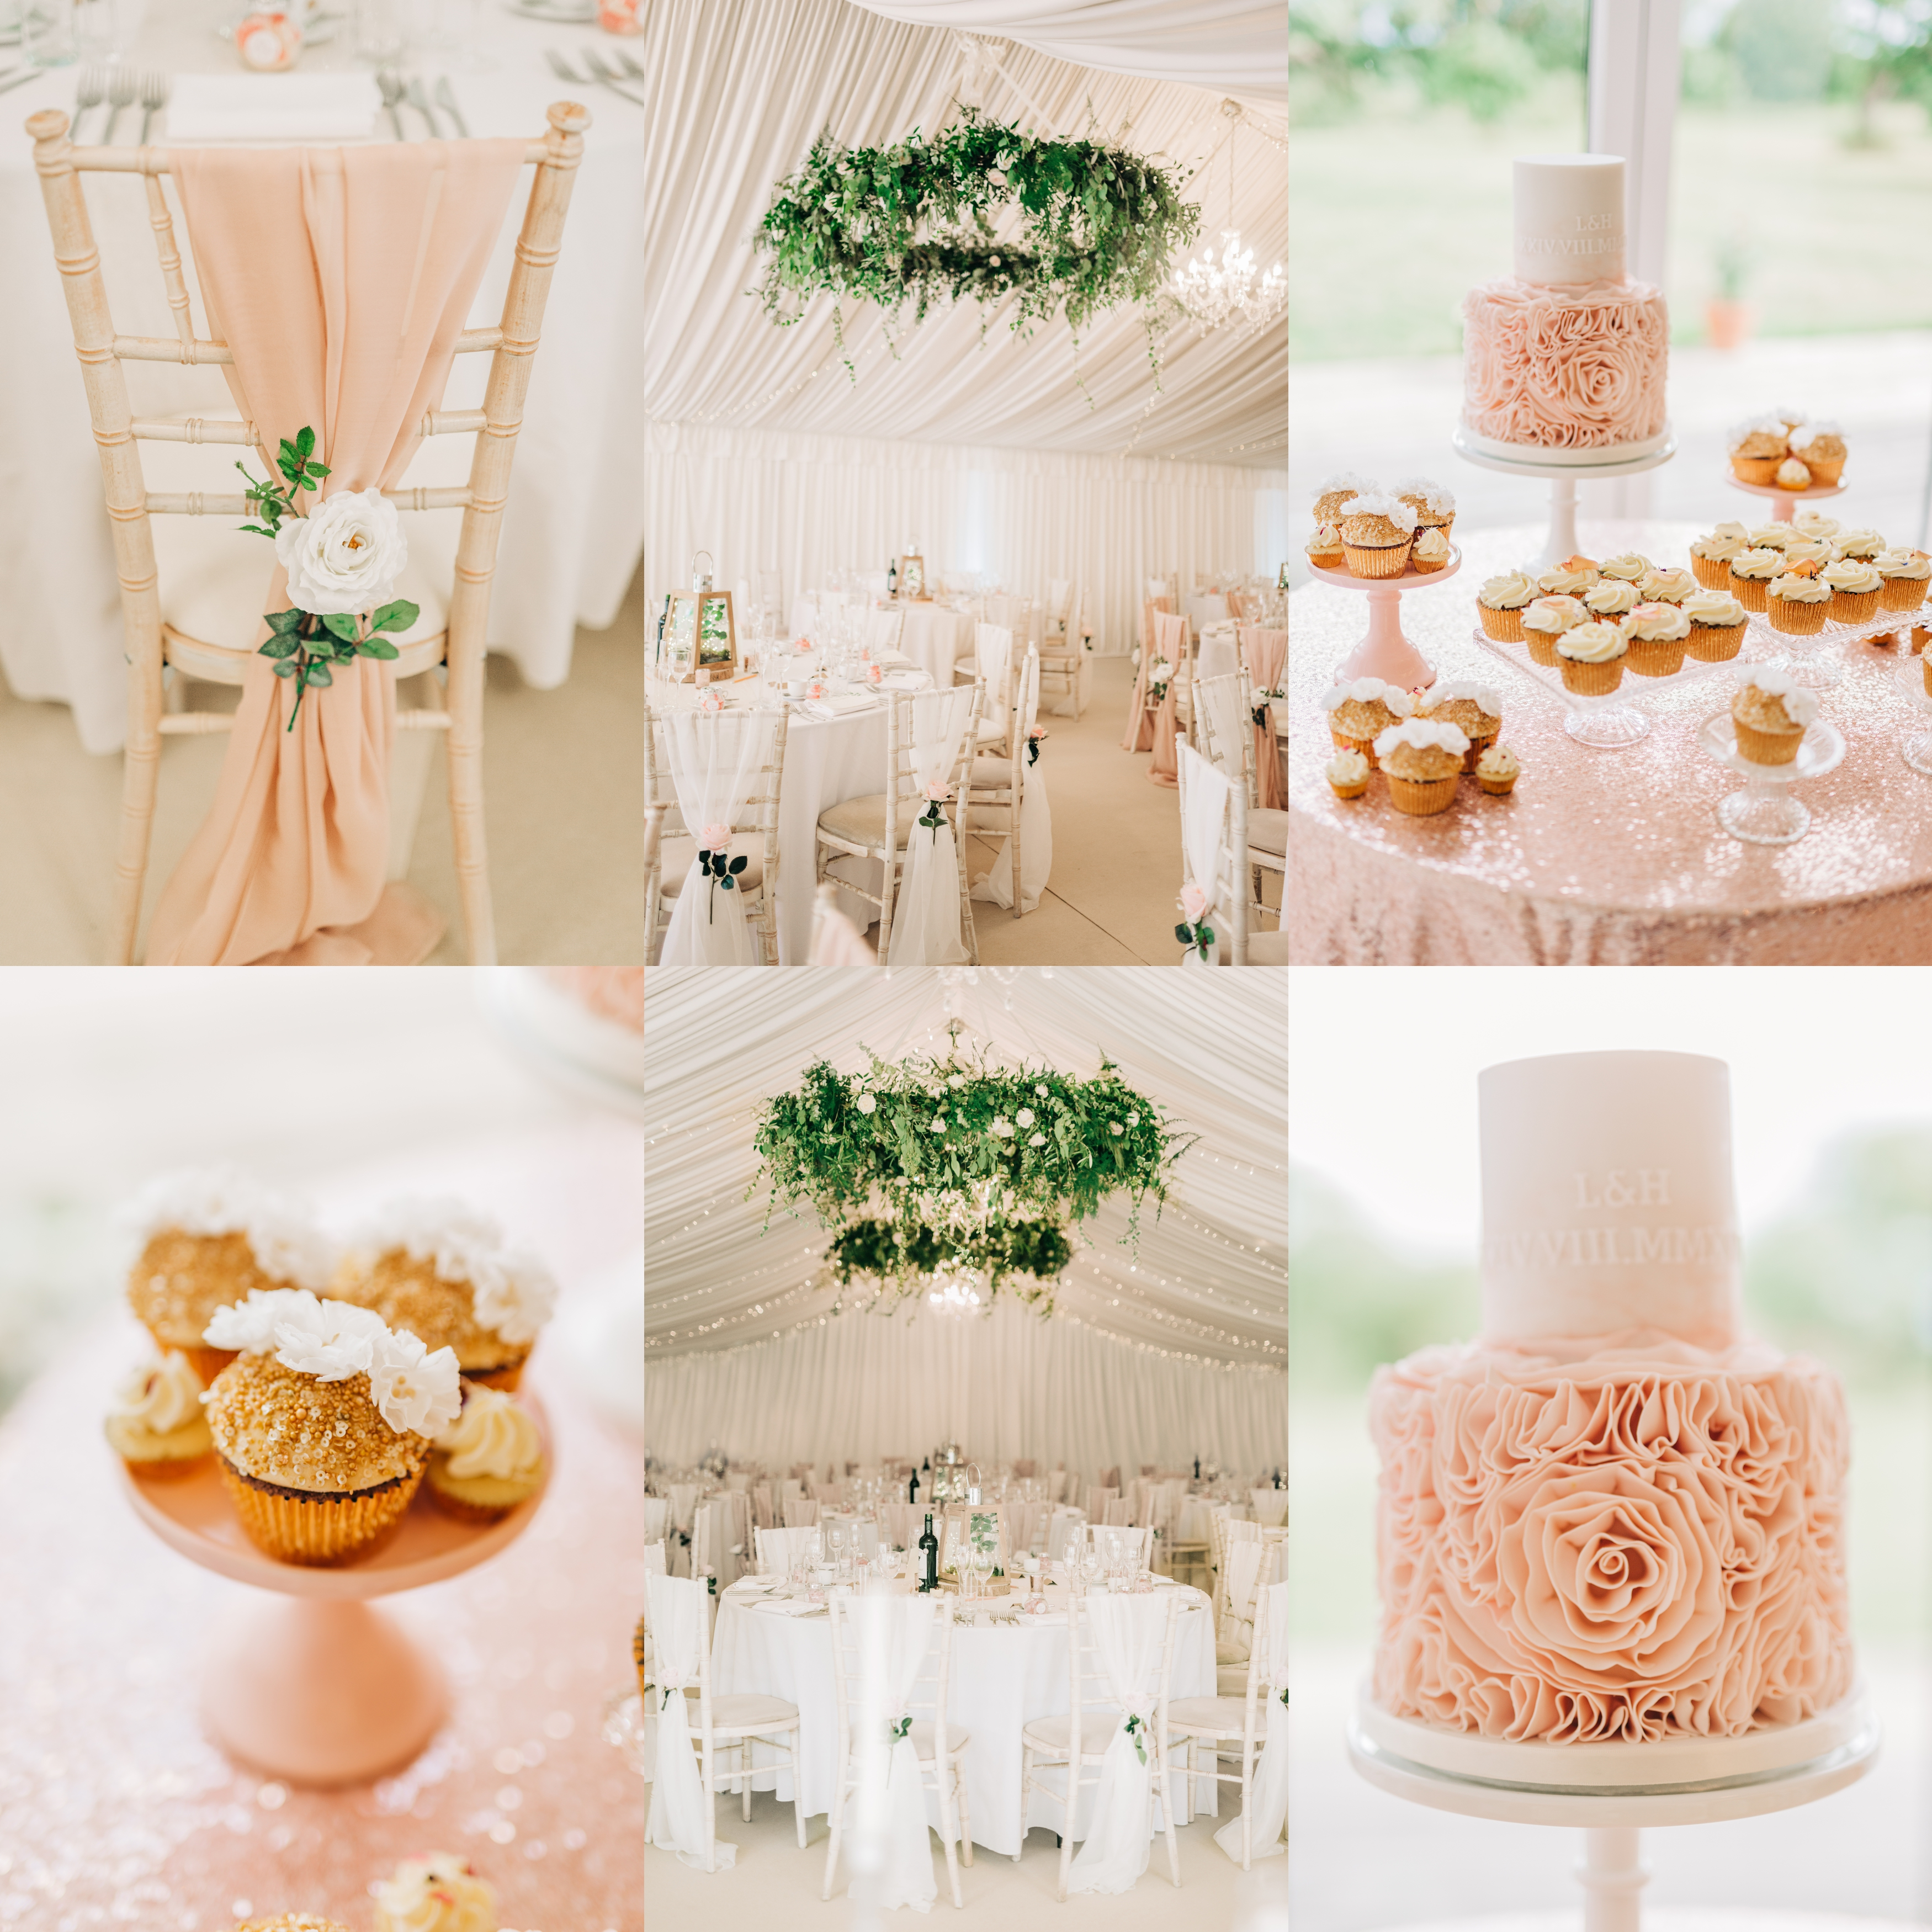 Wedding Tables and Chairs, Wedding Cake